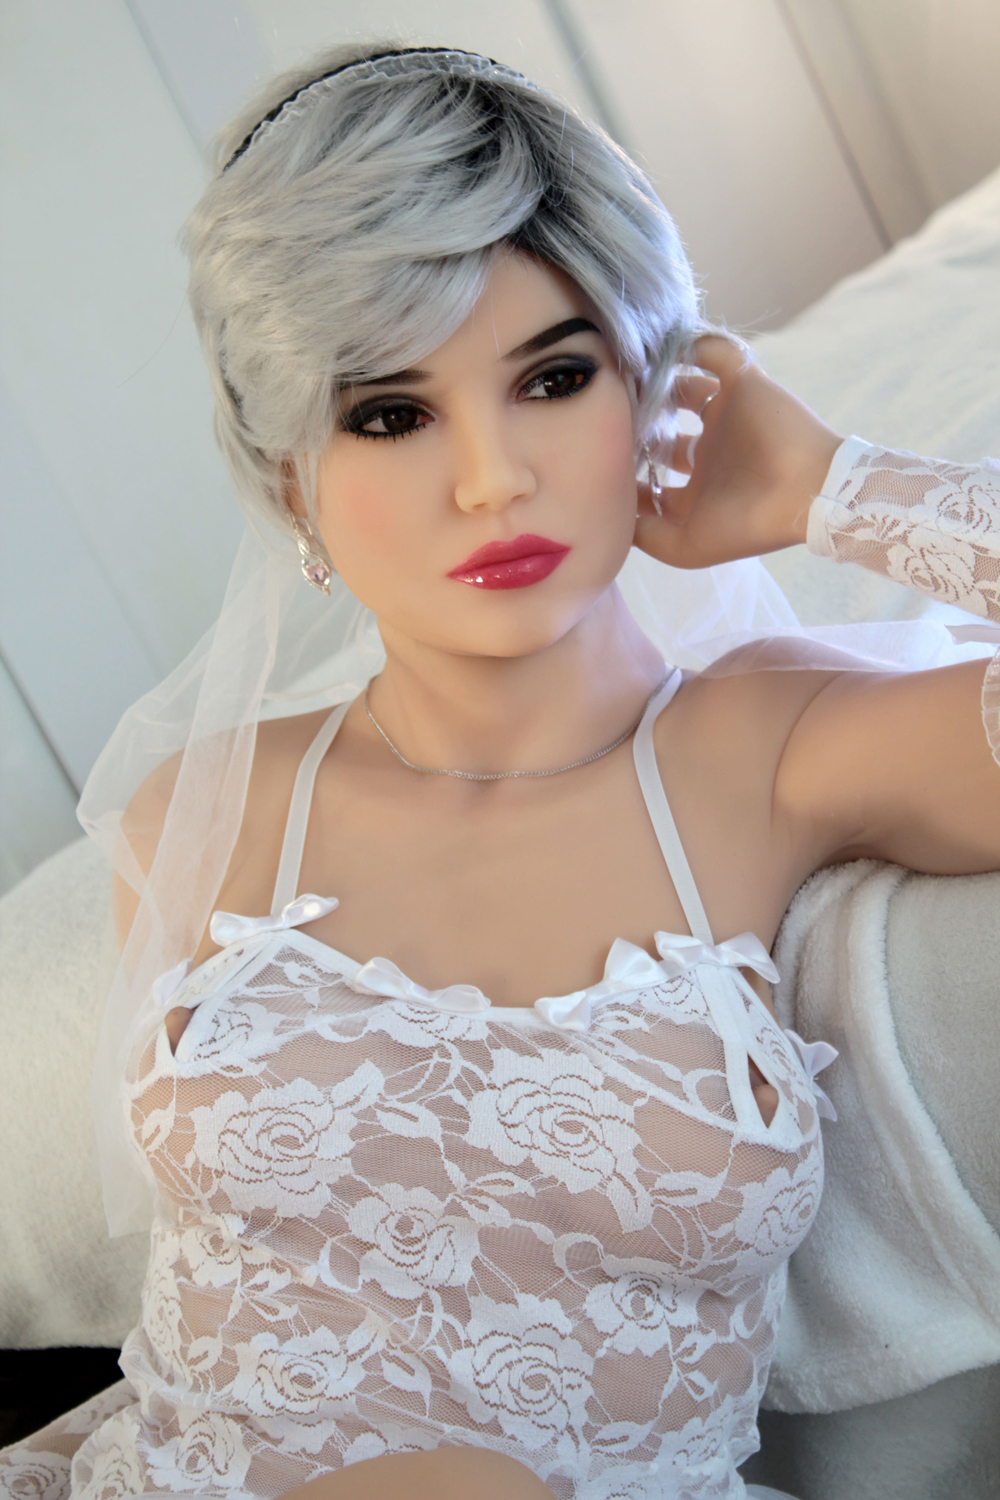 sex doll HR 158cm 1 - Adopte une doll